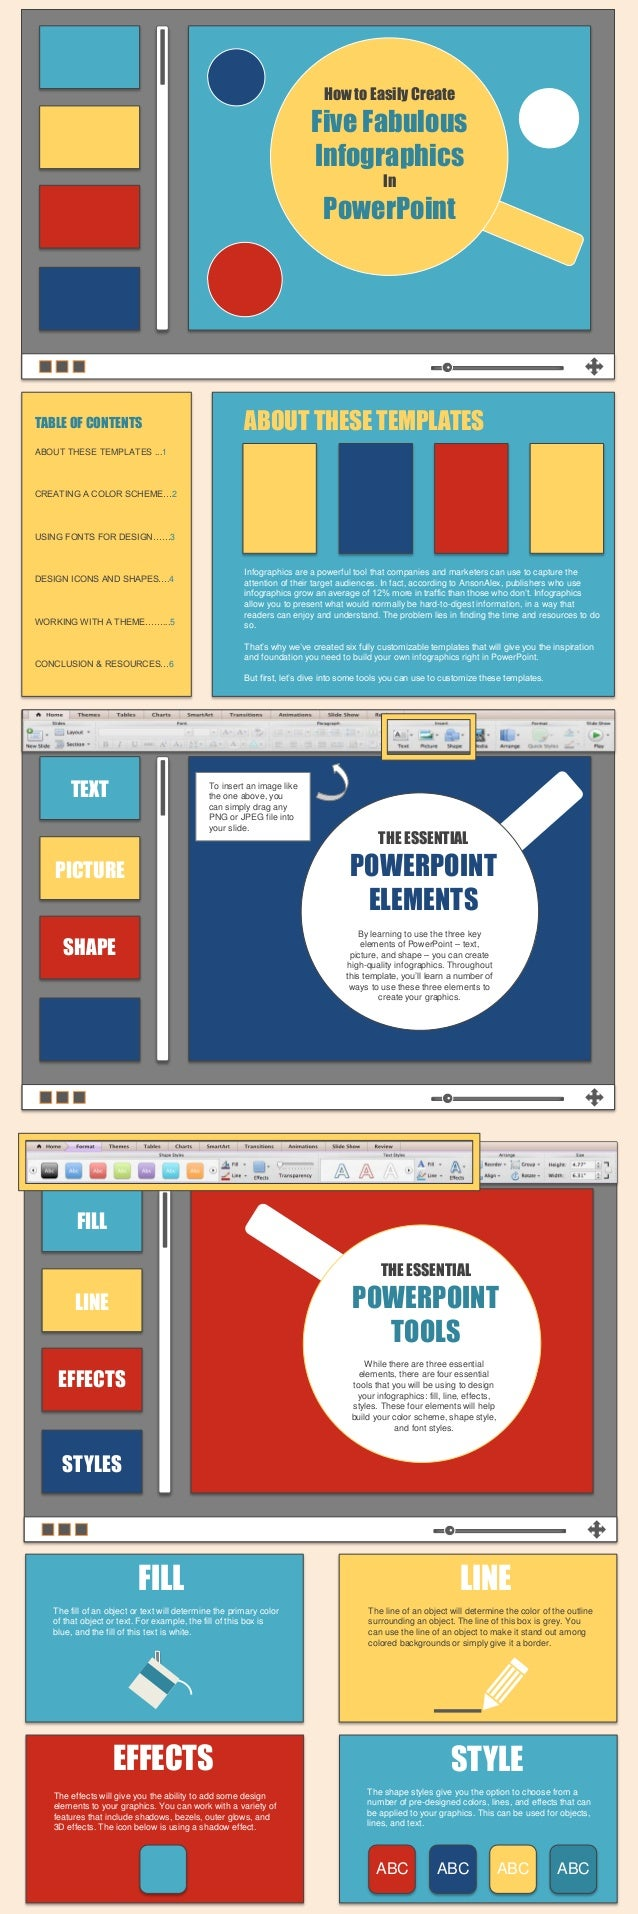 How to create 5 fabulous infographics via HUBSPOT